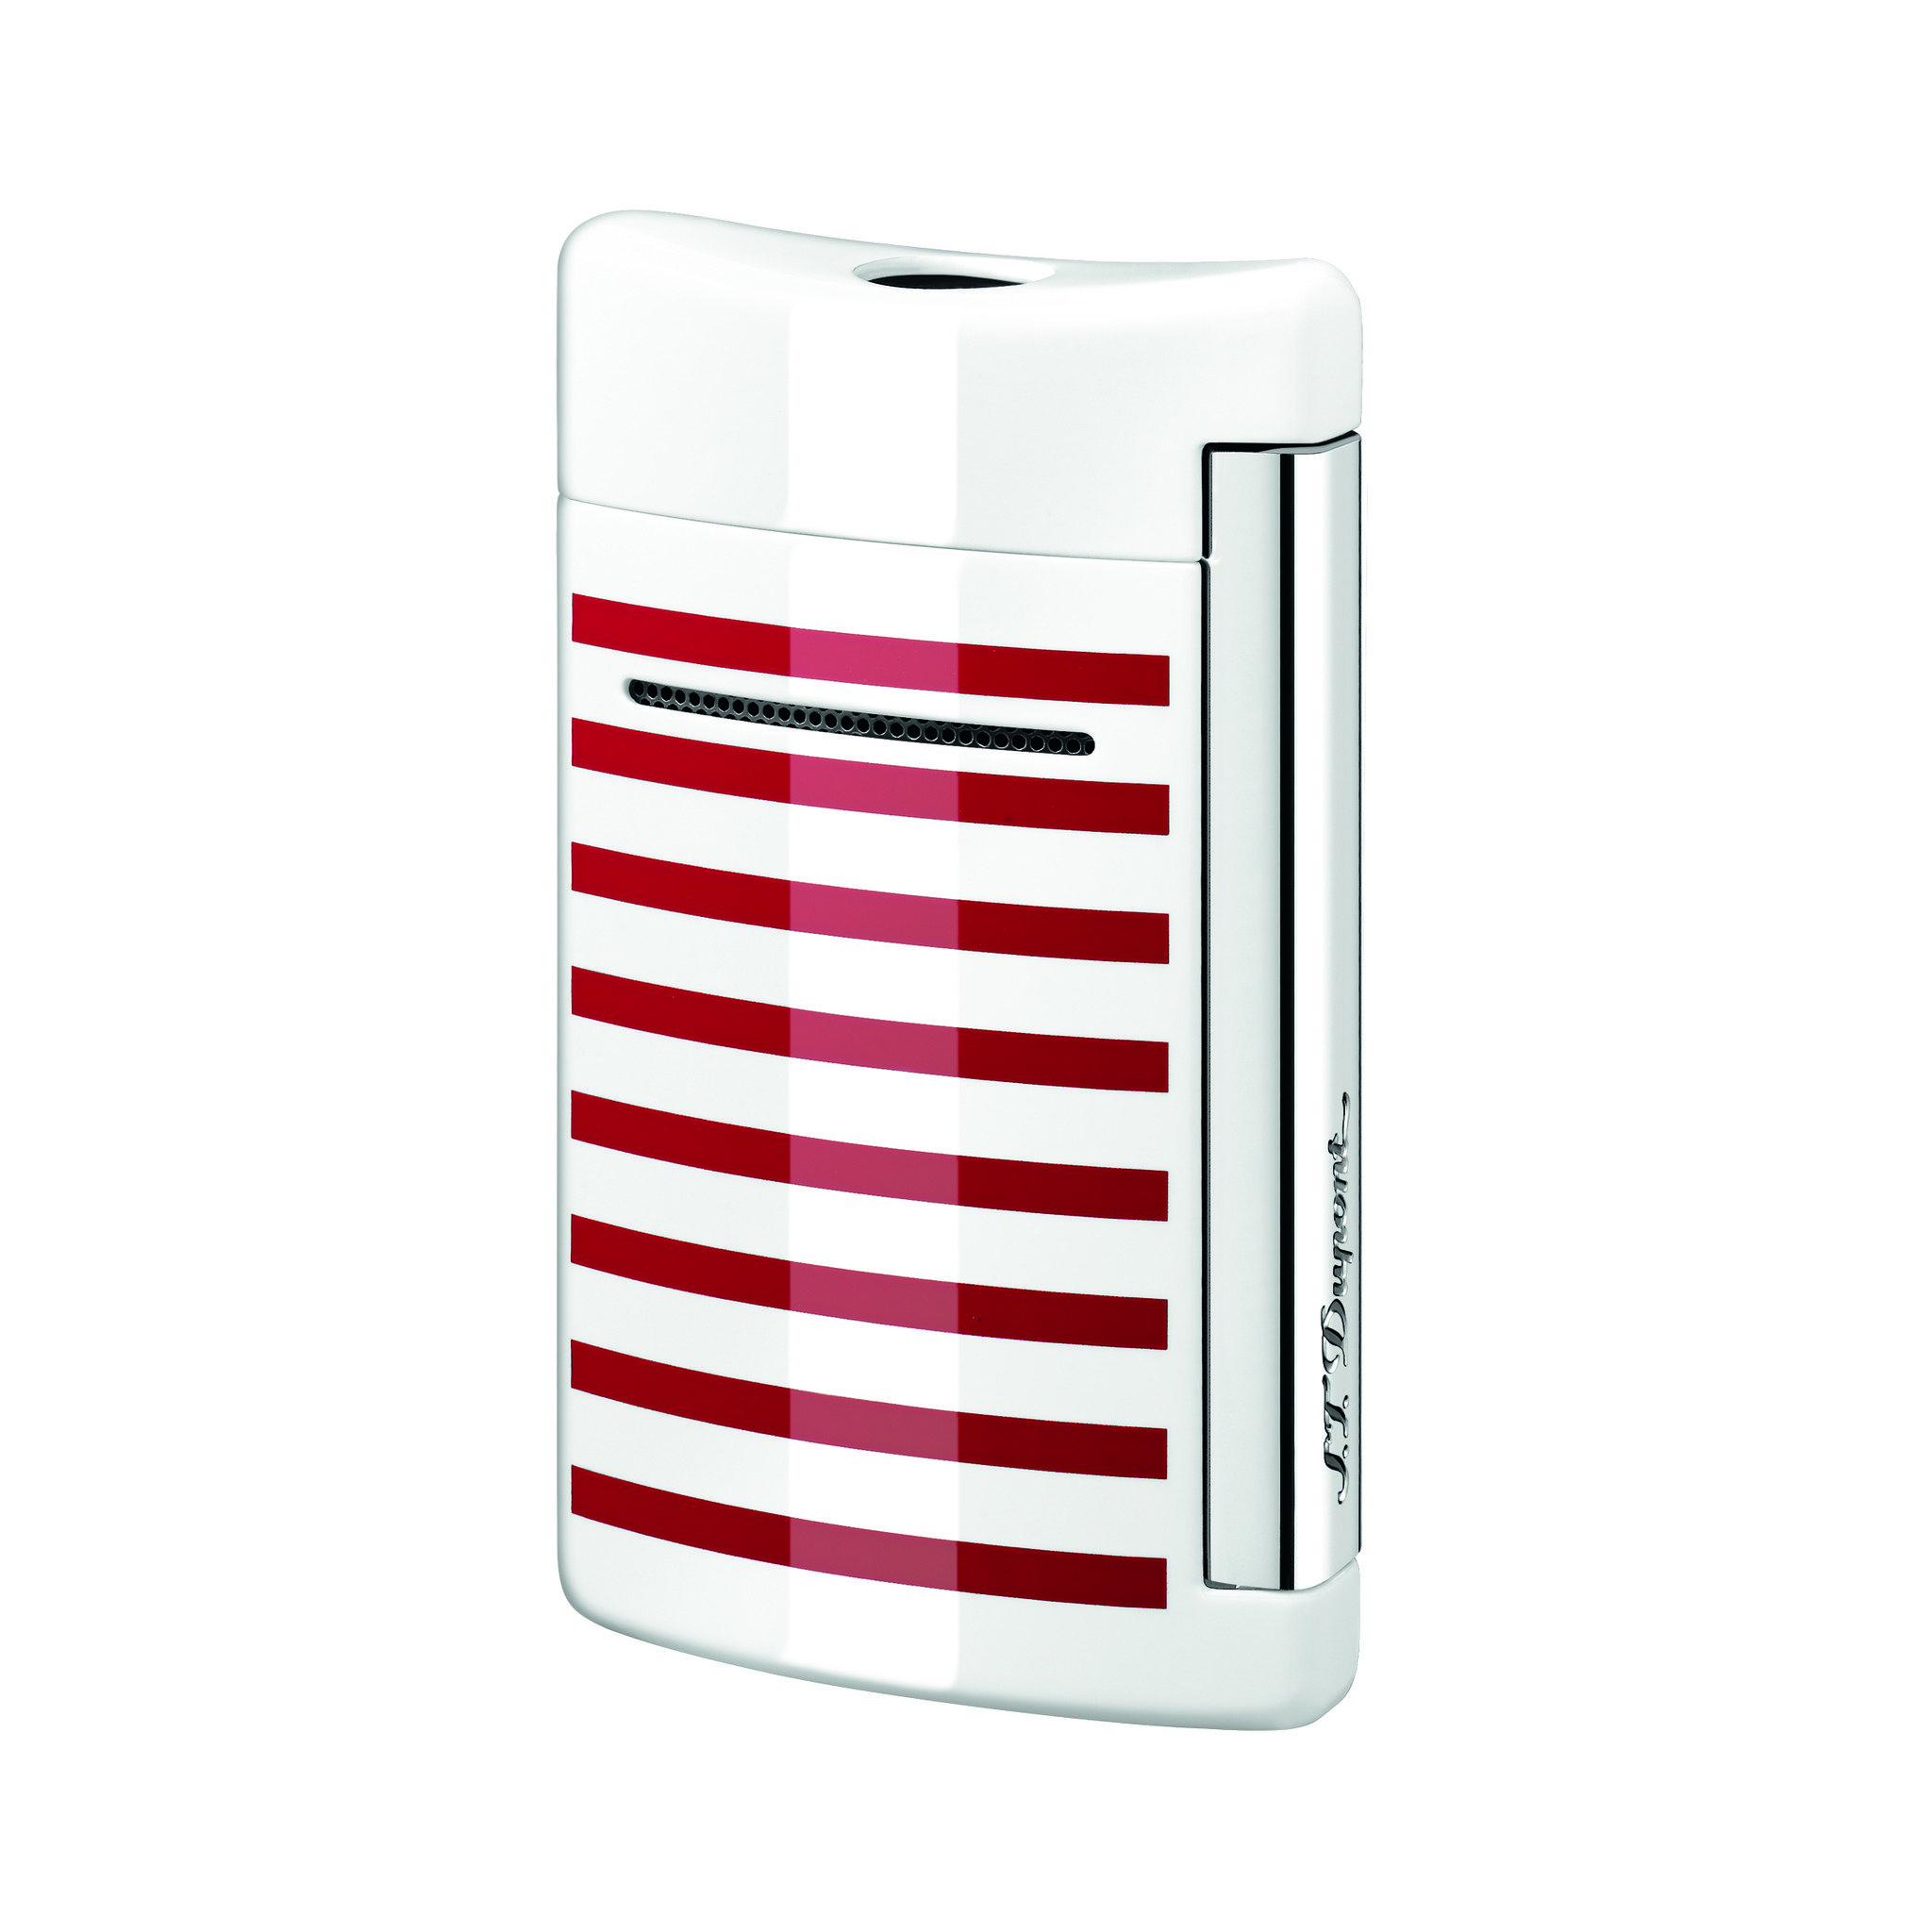 S.T. Dupont Minijet white red stripes (010108)